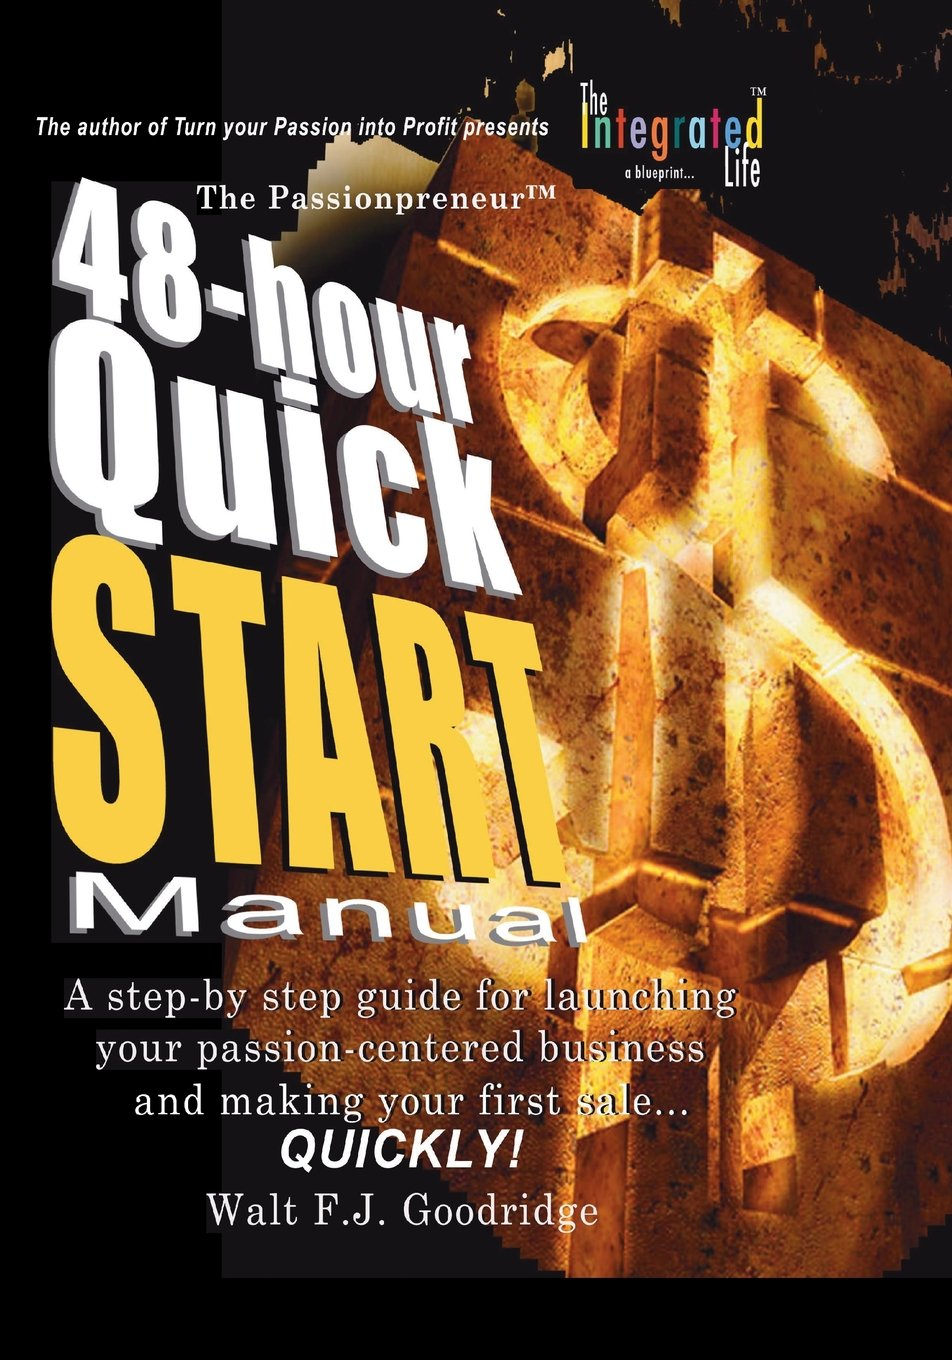 Download The Turn Your Passion Into Profit Quick Start Manual: A step-by-step guide for transforming any talent, hobby or product idea into a money-making venture...FAST! PDF